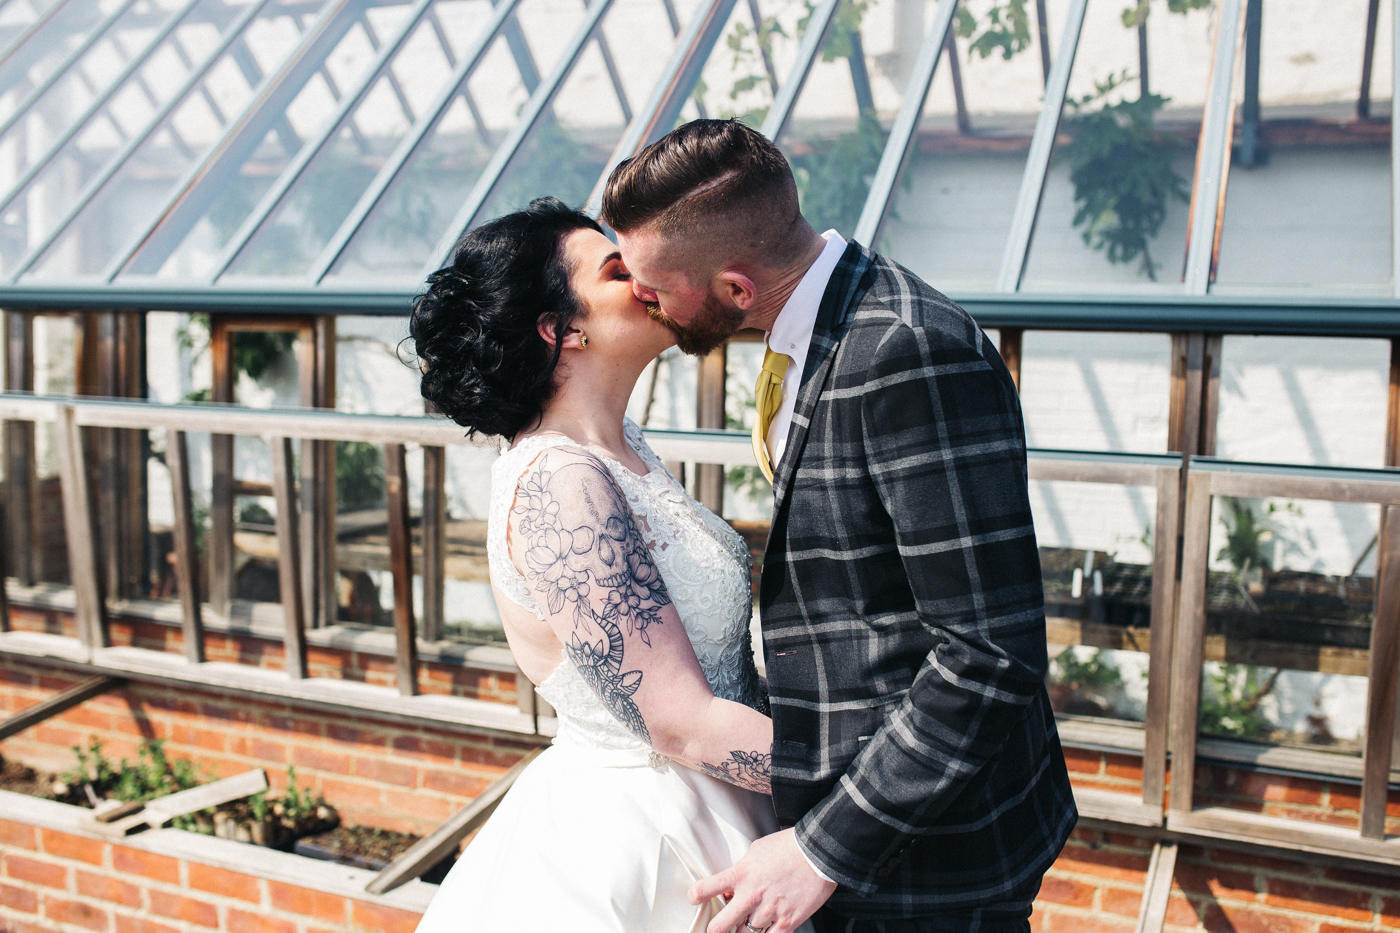 a bride and groom kiss outside a victorian greenhouse. preston park museum wedding stockton teesside middlesbrough wedding photographer